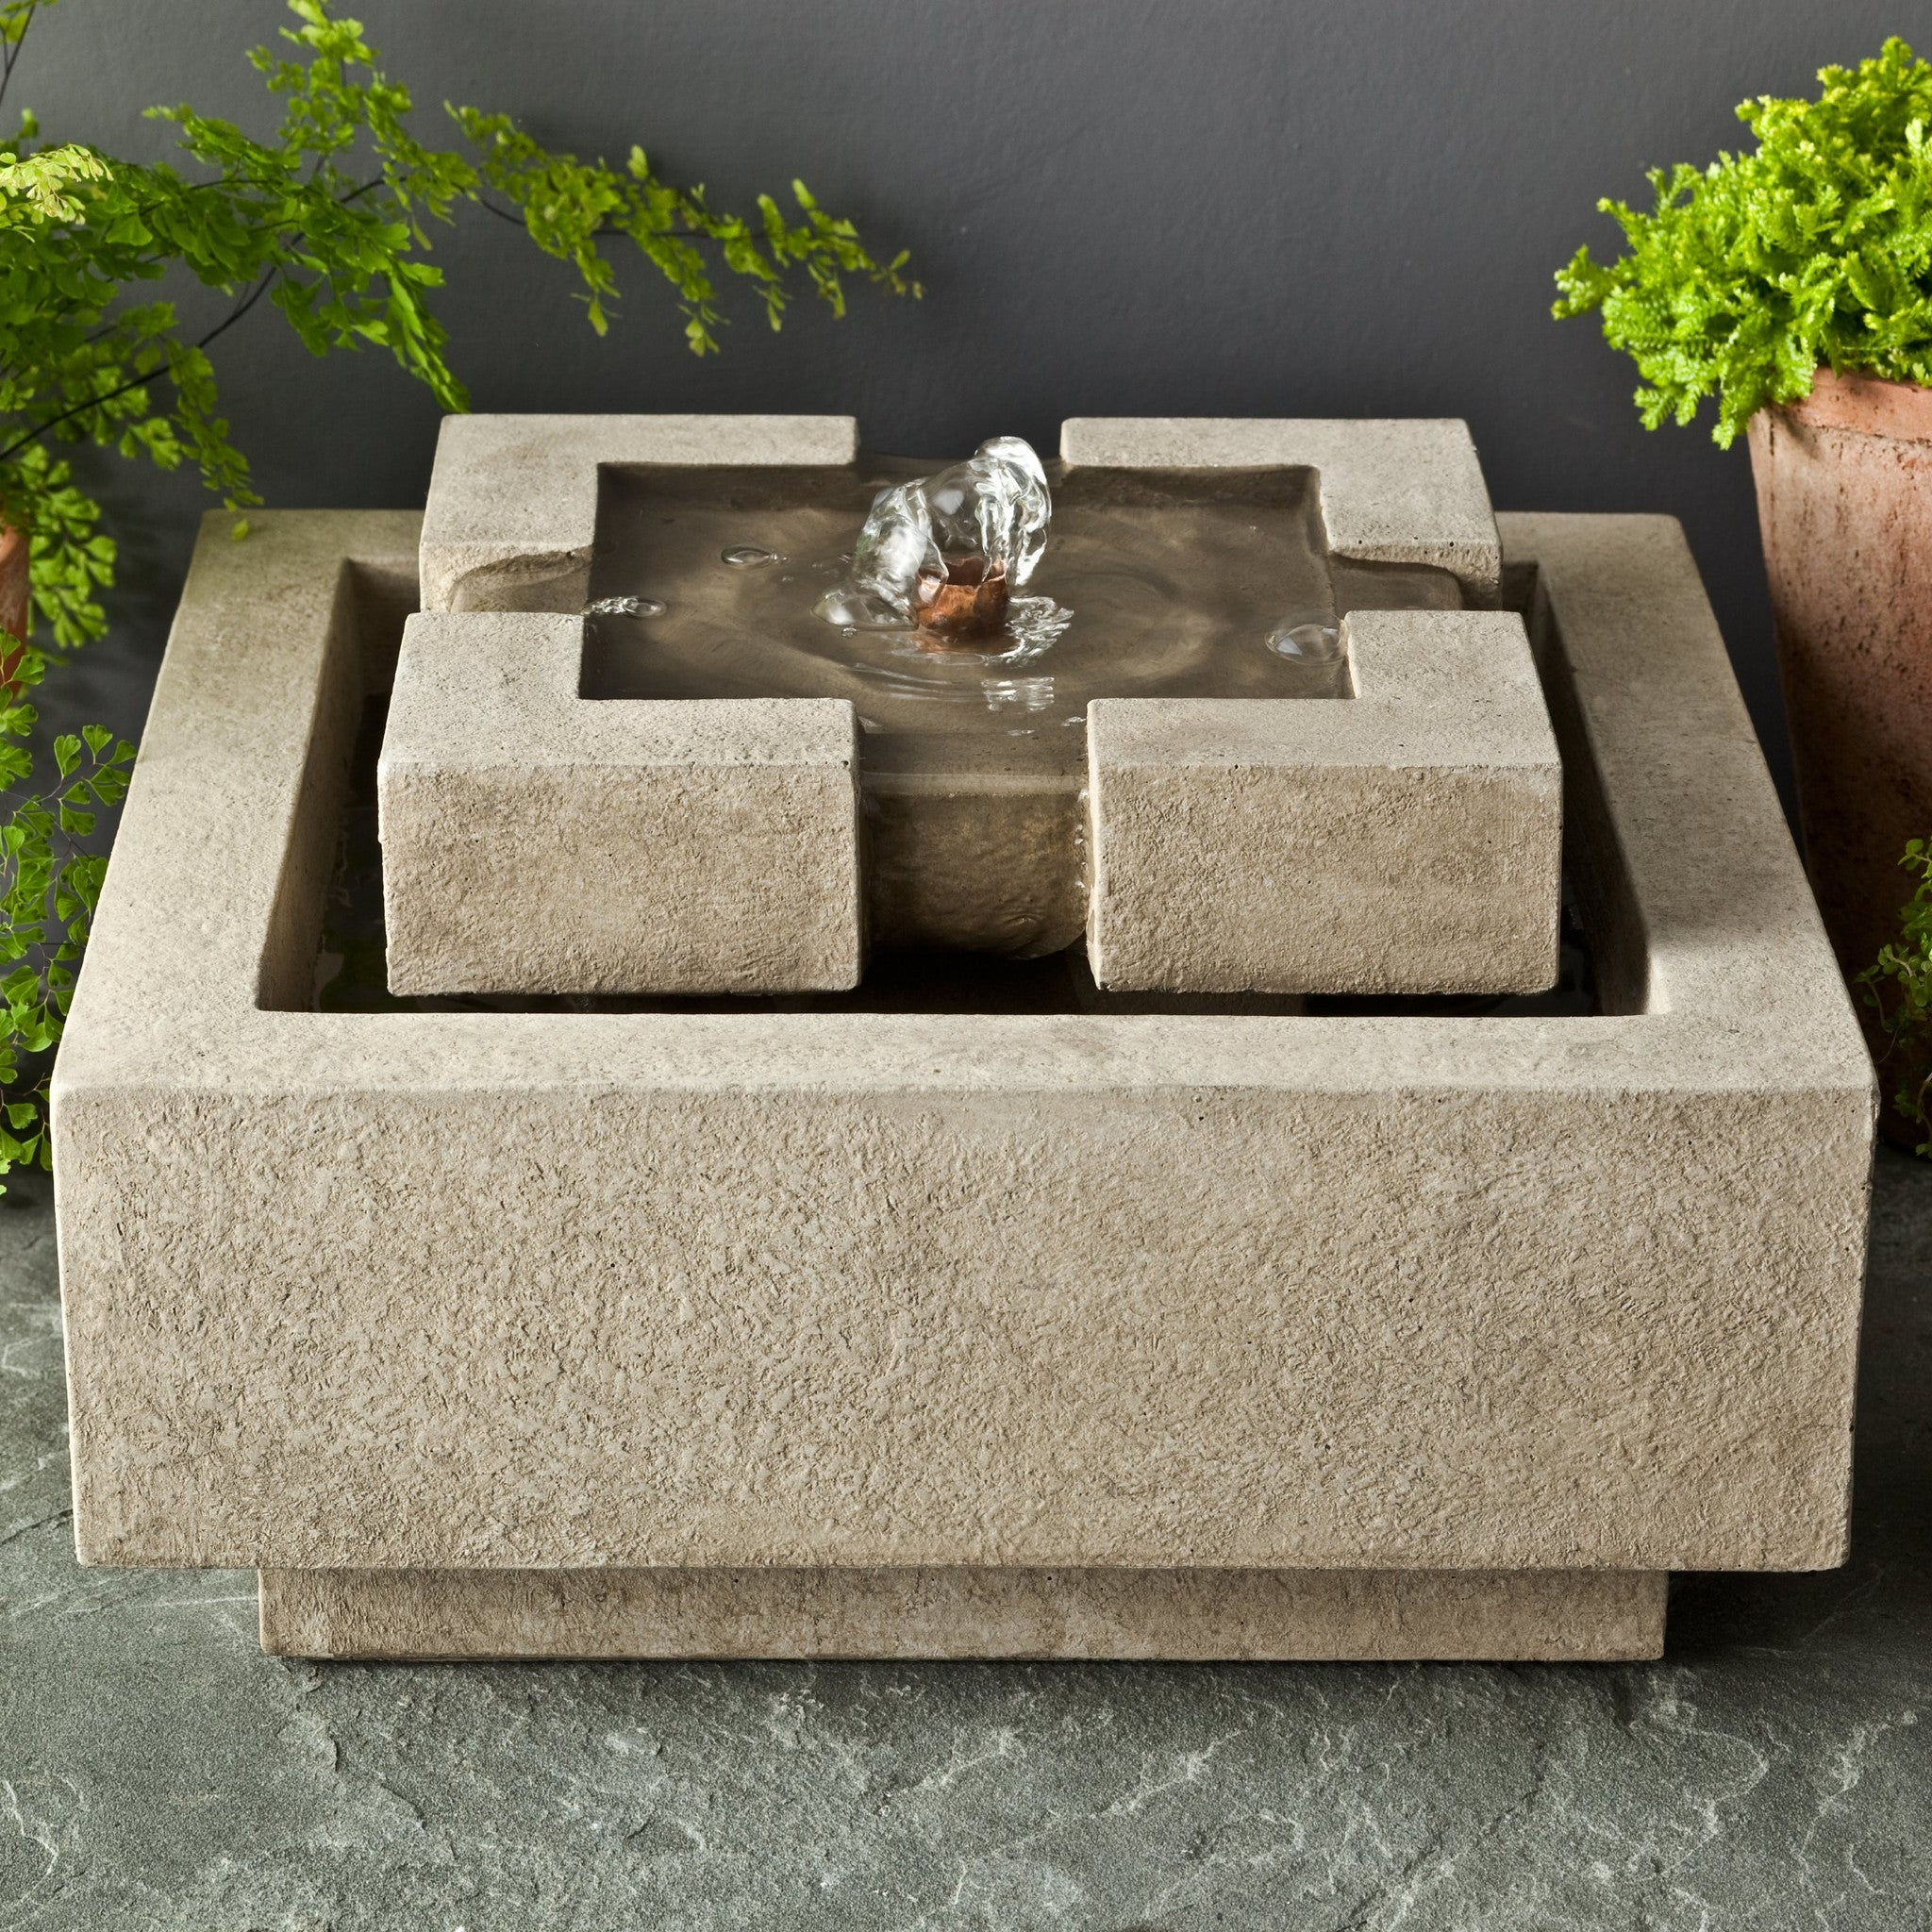 Campania Escala Mini Series Fountain - SoothingWalls